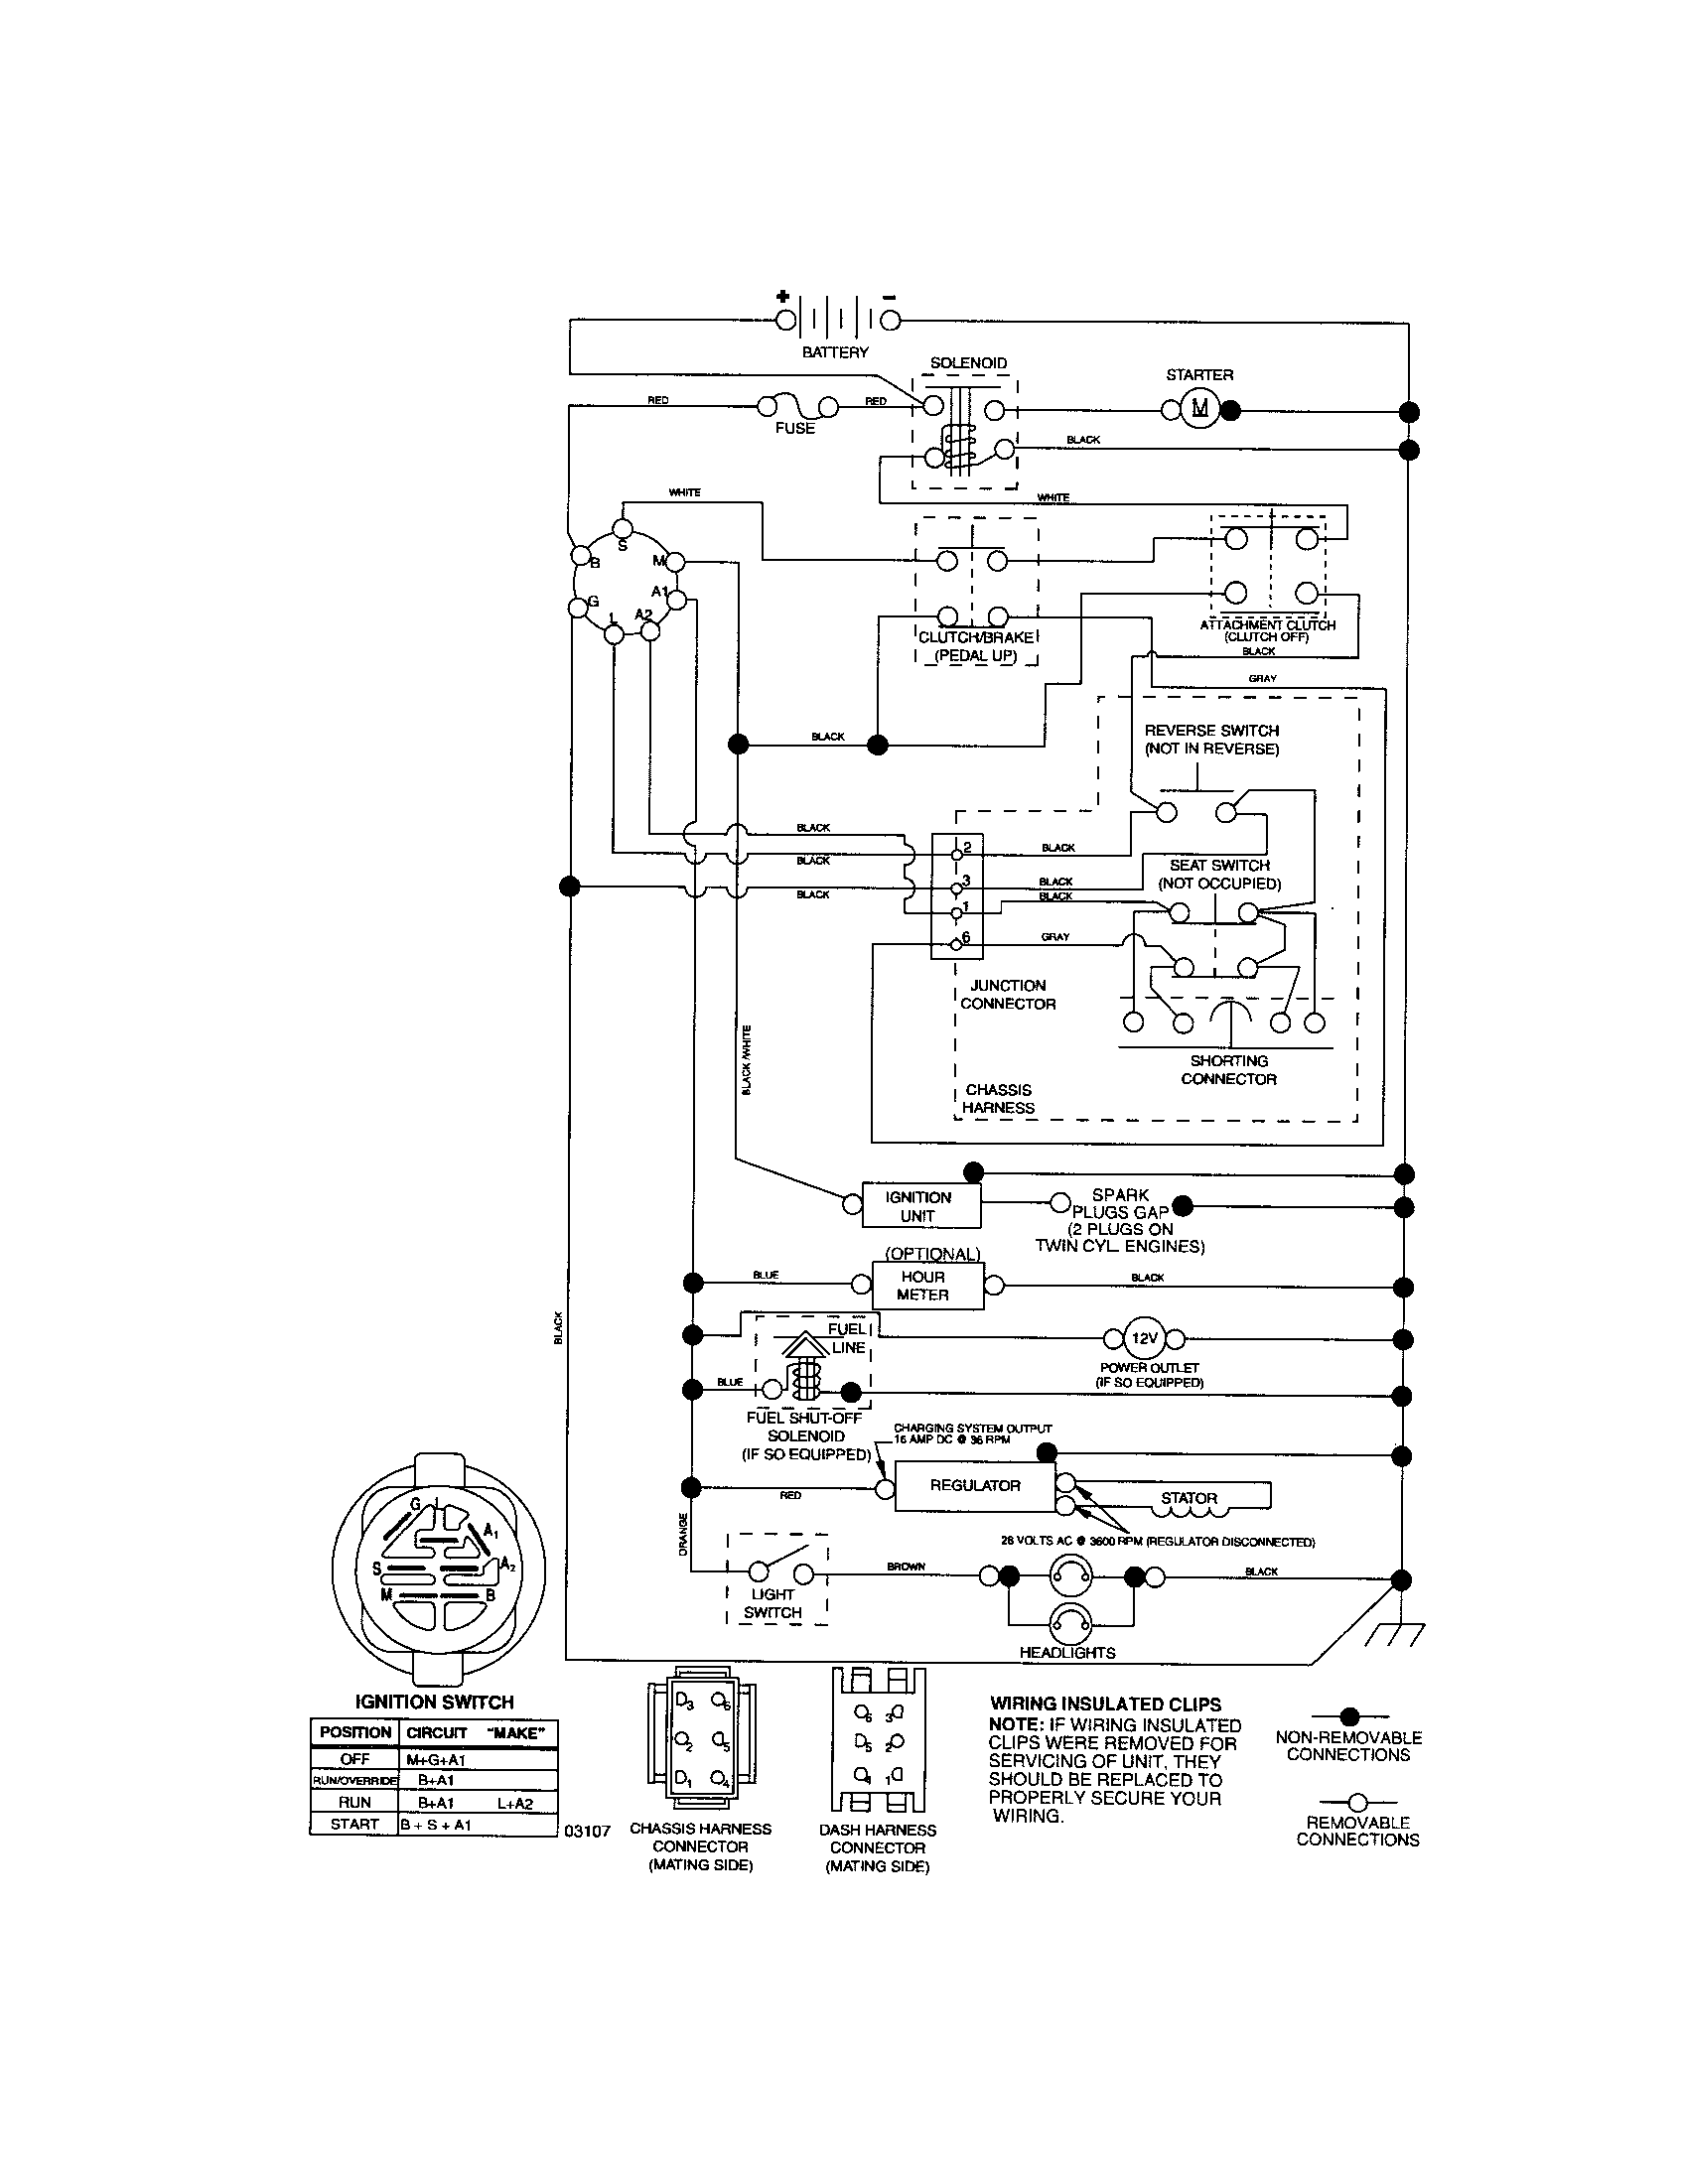 hight resolution of craftsman riding mower electrical diagram wiring diagram craftsman craftsman wiring diagrams